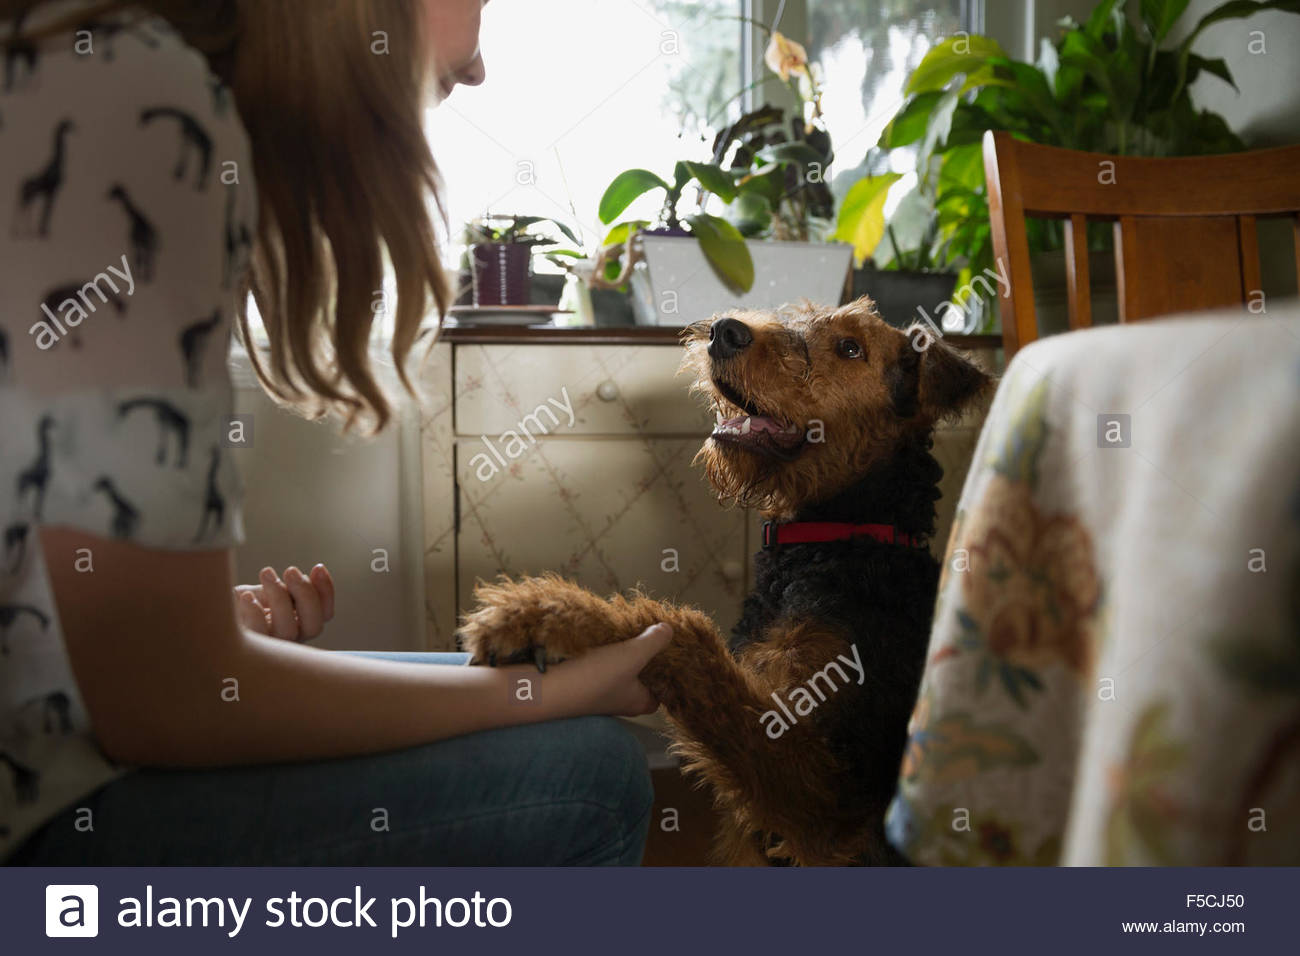 Girl shaking dog paw in kitchen - Stock Image